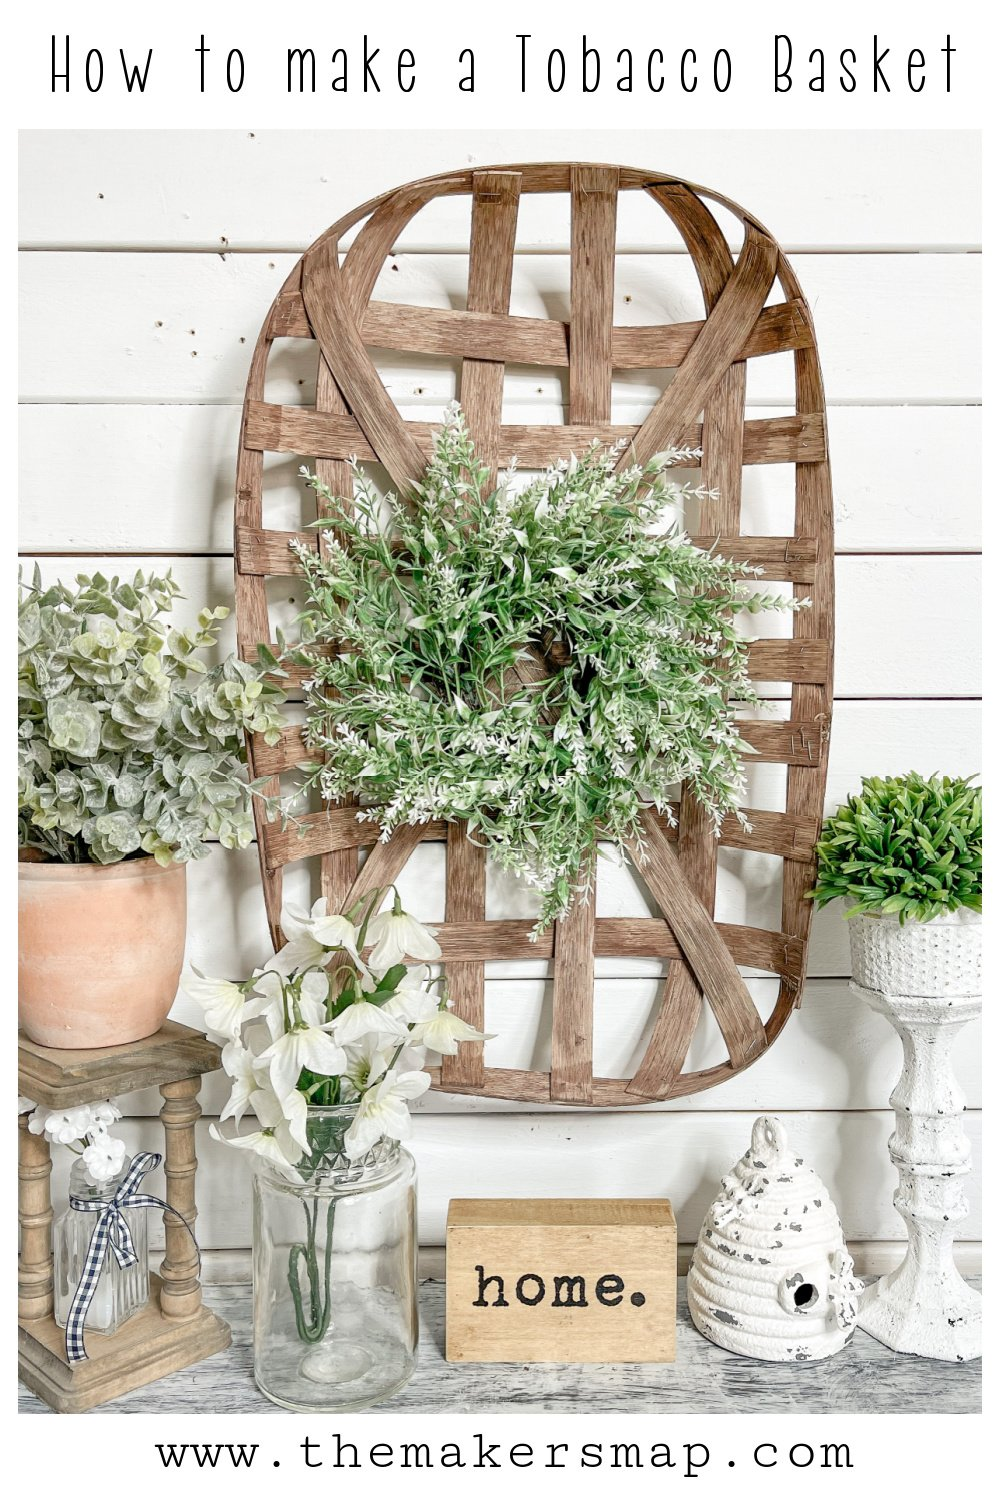 How to make a tobacco basket cheap affordable home decor ideas